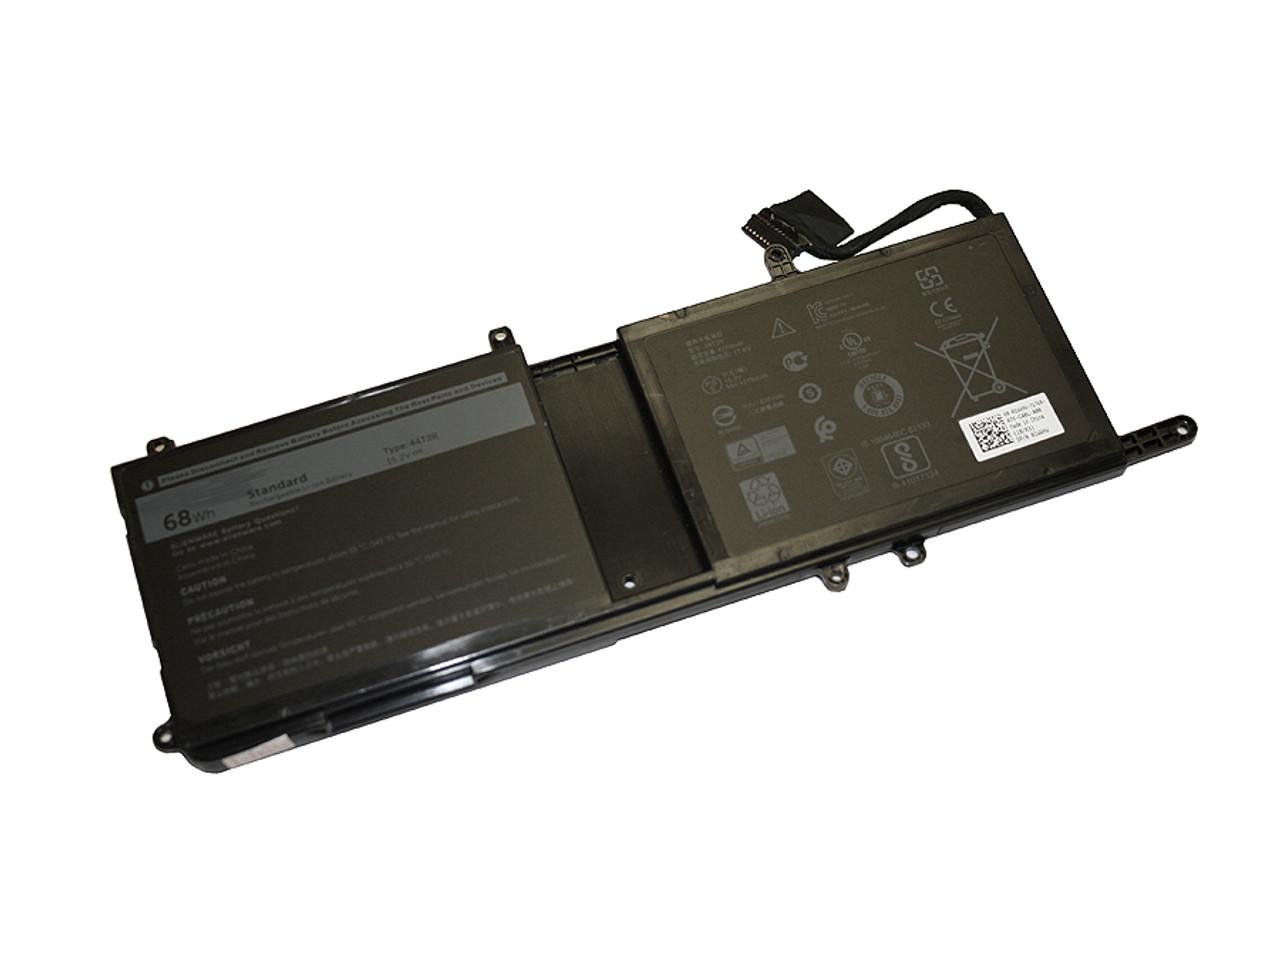 Replacement  Battery for DELL Alienware 17 R5, 15 R4, 17 R4, 15 R3